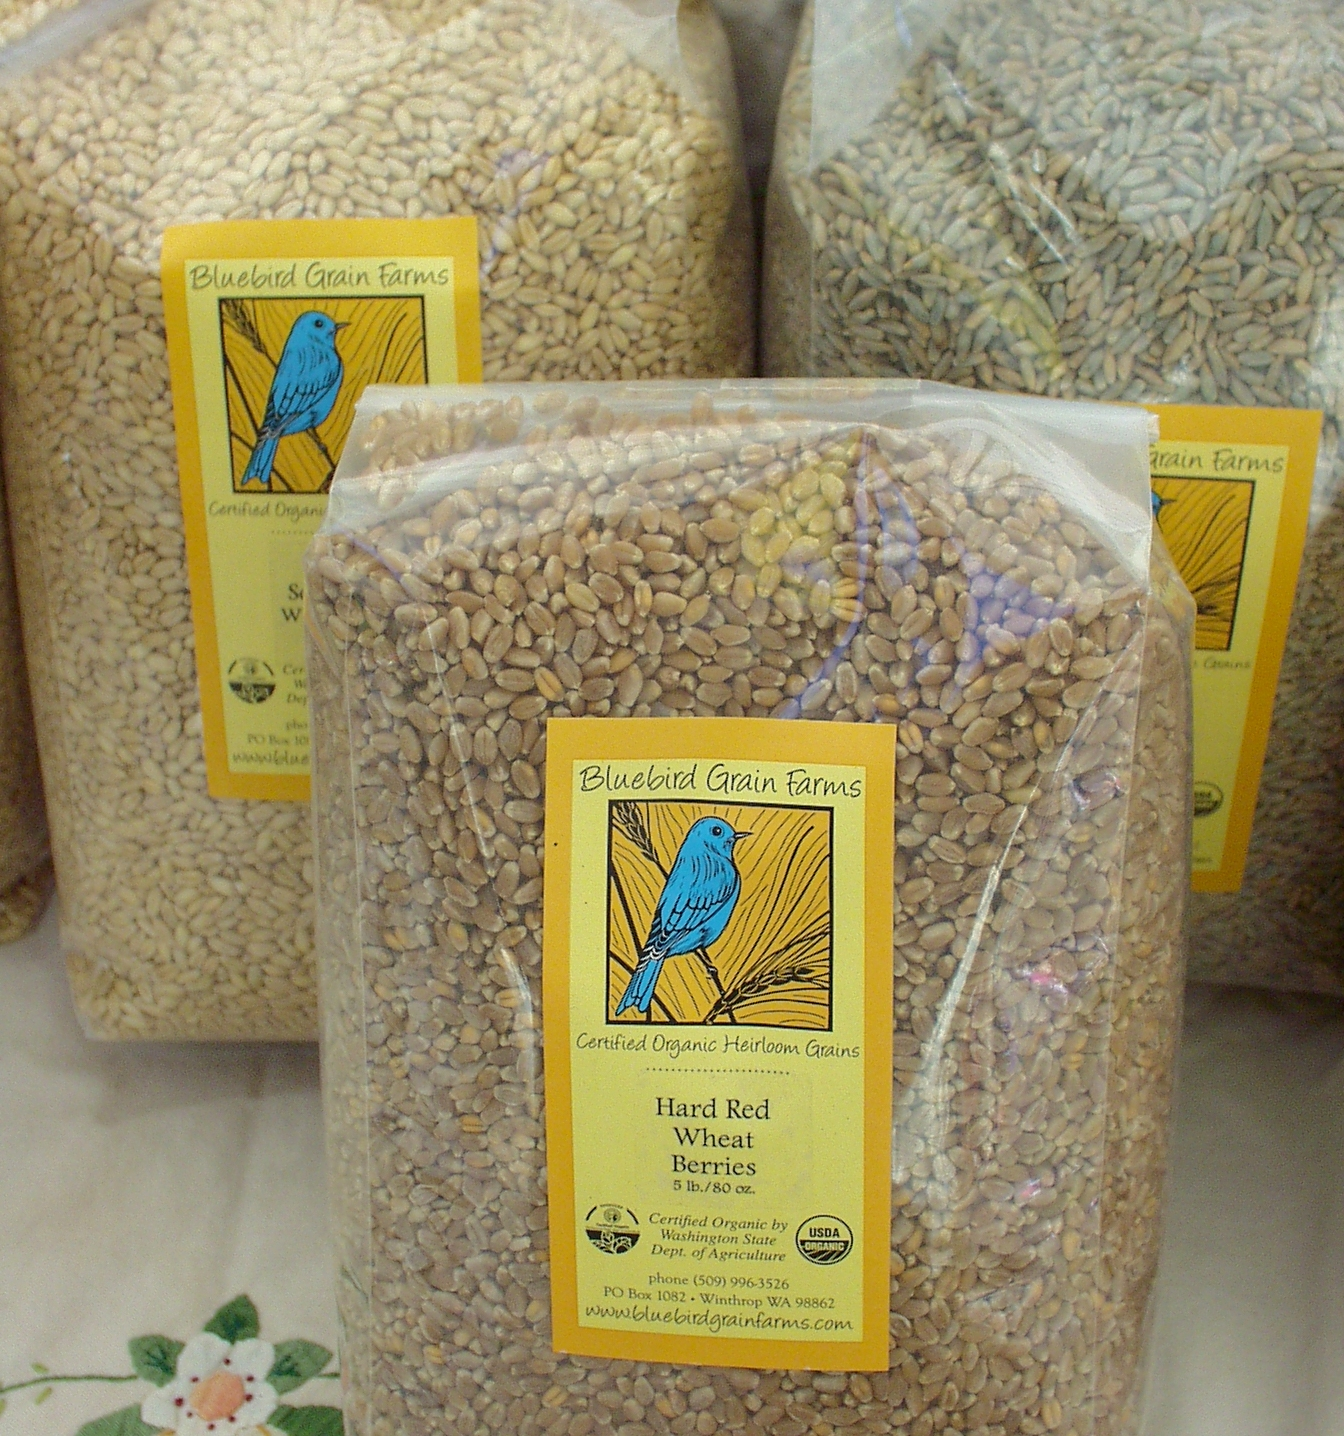 Whole grains from Bluebird Grain Farms. Photo copyright 2009 by Zachary D. Lyons.